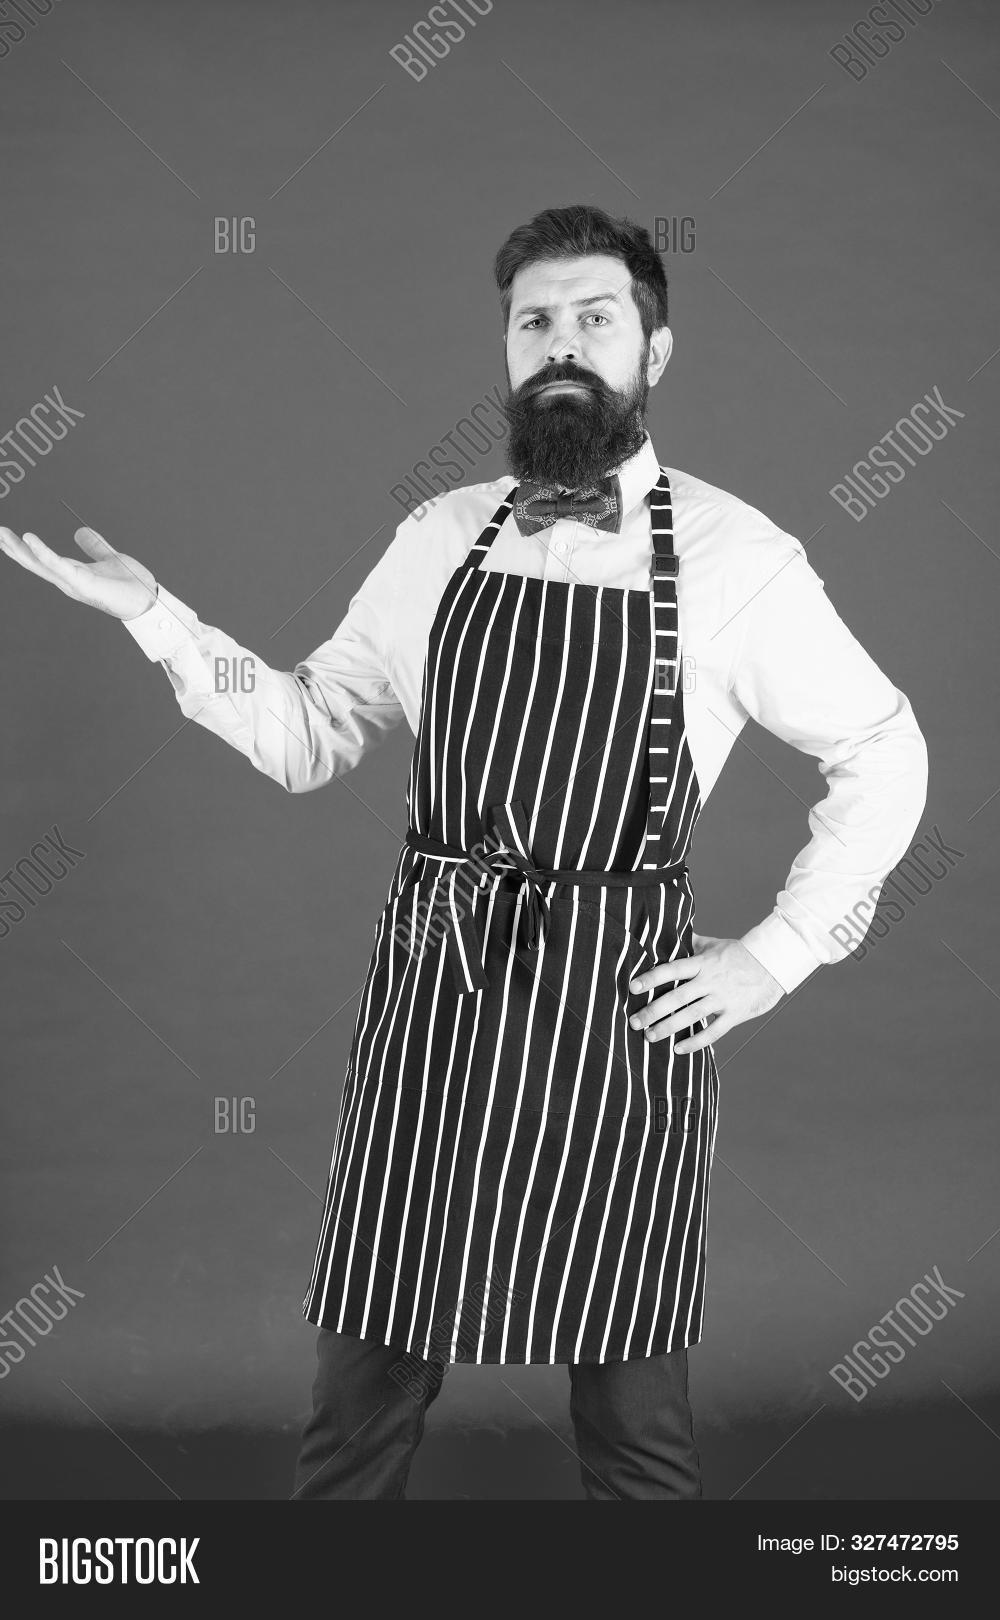 apron,bar,barista,barman,bartender,bartending,beard,bearded,brutal,business,career,caucasian,chef,cook,cooking,employee,grill,hair,haircut,hipster,job,kitchen,man,master,moustache,mustache,presenting,product,profession,professional,restaurant,self-employed,servant,service,serving,skill,skilled,skillful,startup,uniform,unshaven,waiter,work,worker,working,workwear